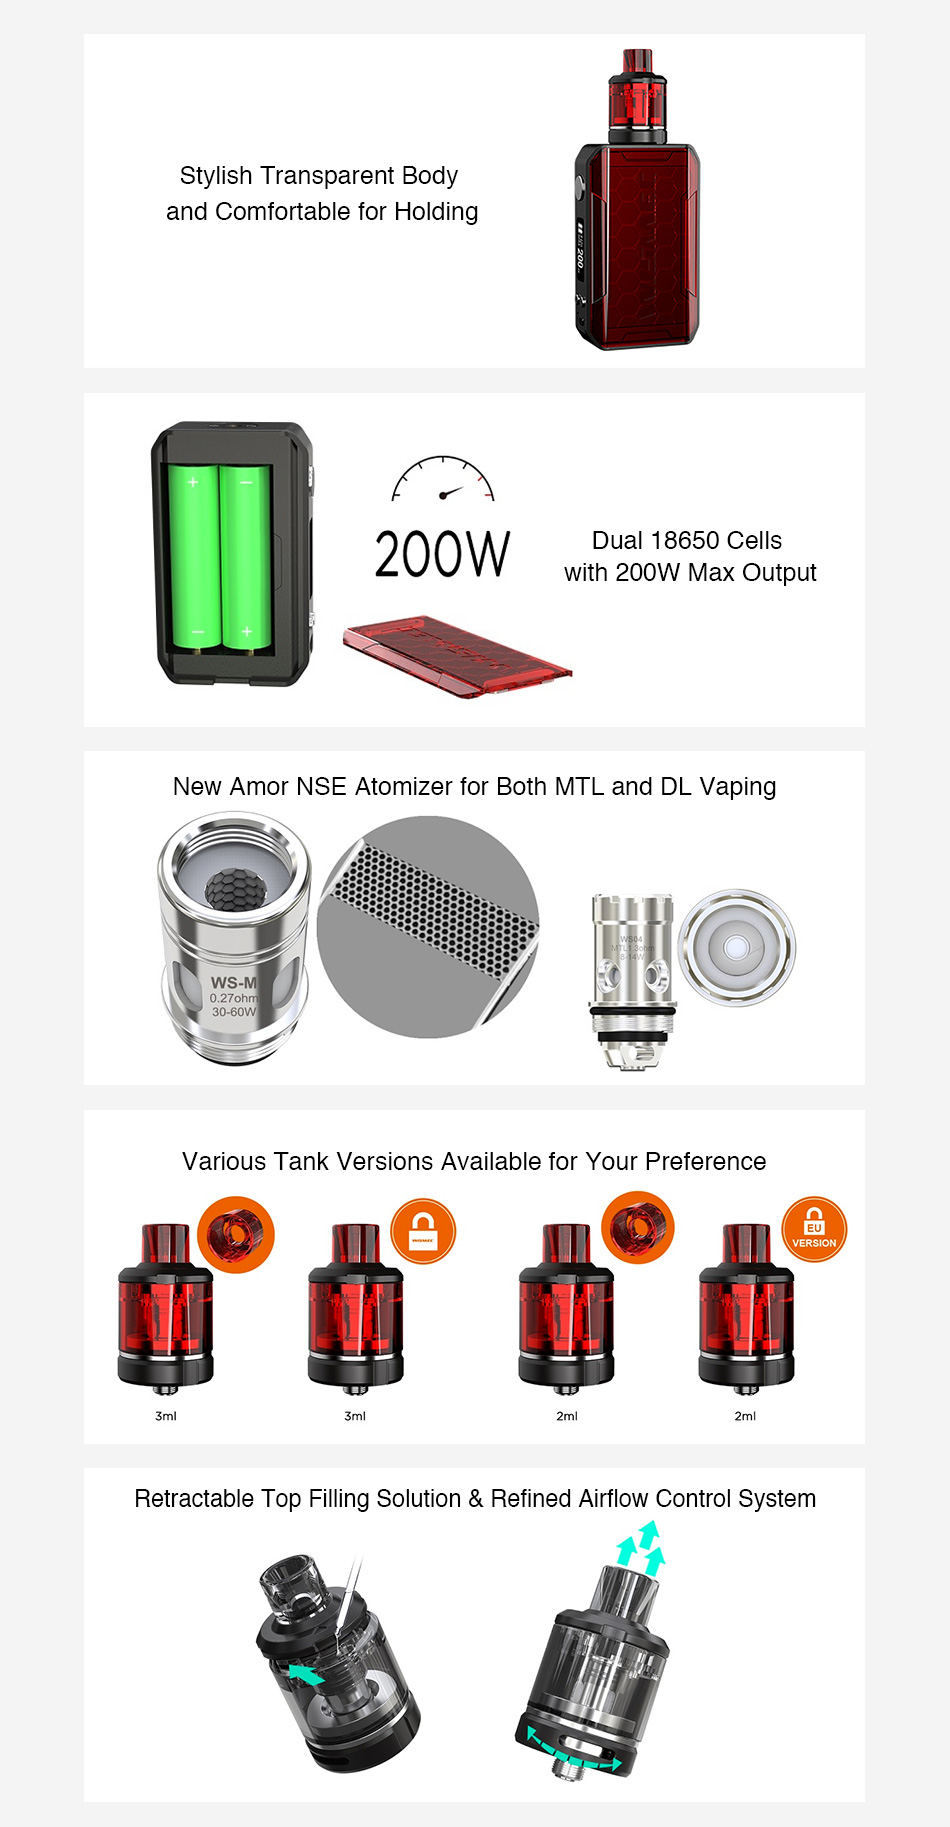 wismec sinuous v200, New Original 200W WISMEC SINUOUS V200 TC Kit with 2ml/3ml Amor NSE Tank & Child Lock MTL & DL Vape Kit No 18650 Battery Box Mod